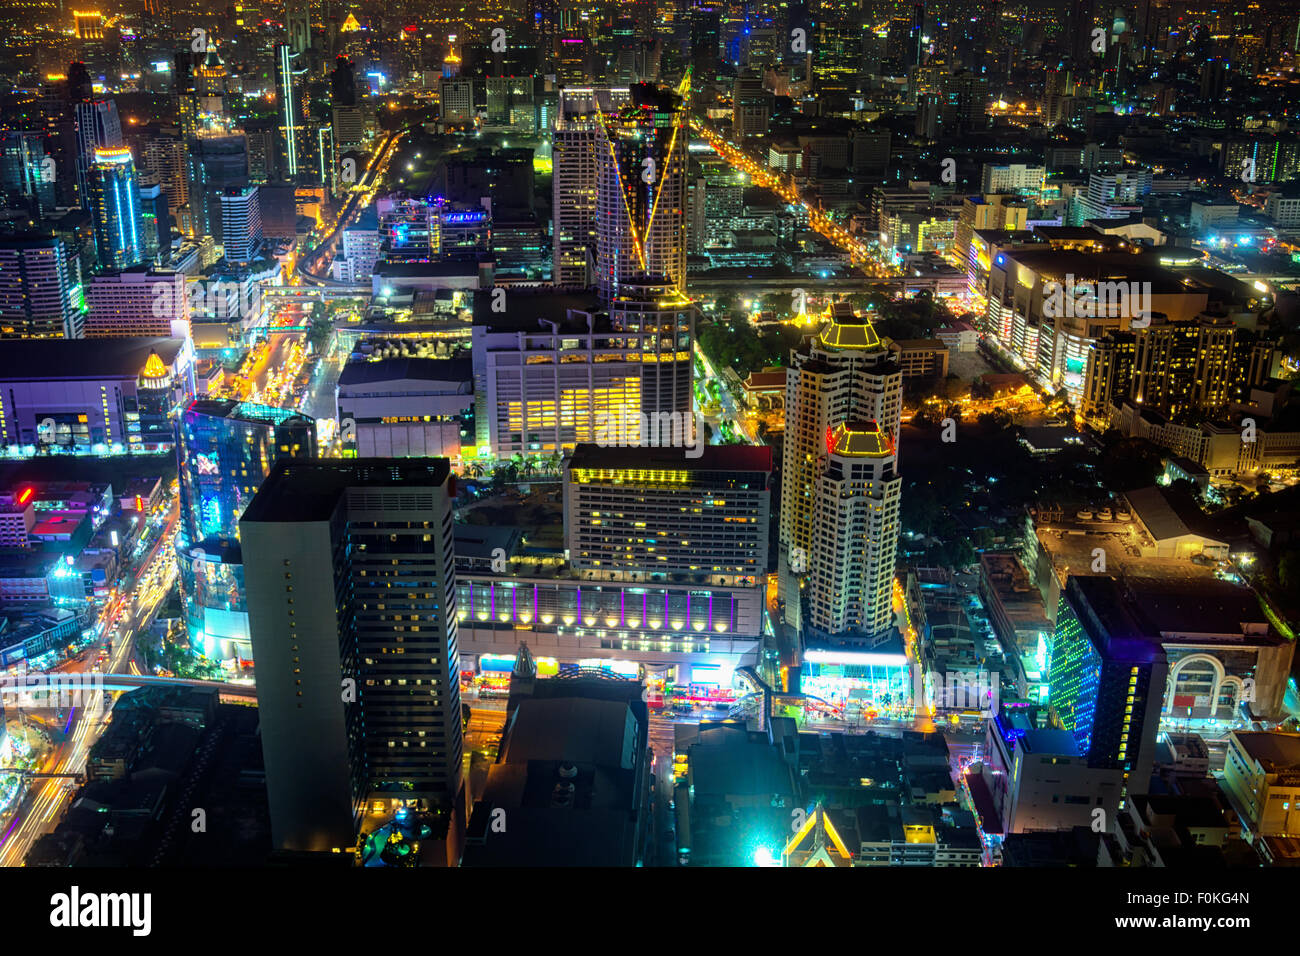 Brightly Lit, Nightime Skyline of a Major Metropolitan City in Asia, with towers and heavy traffic. - Stock Image